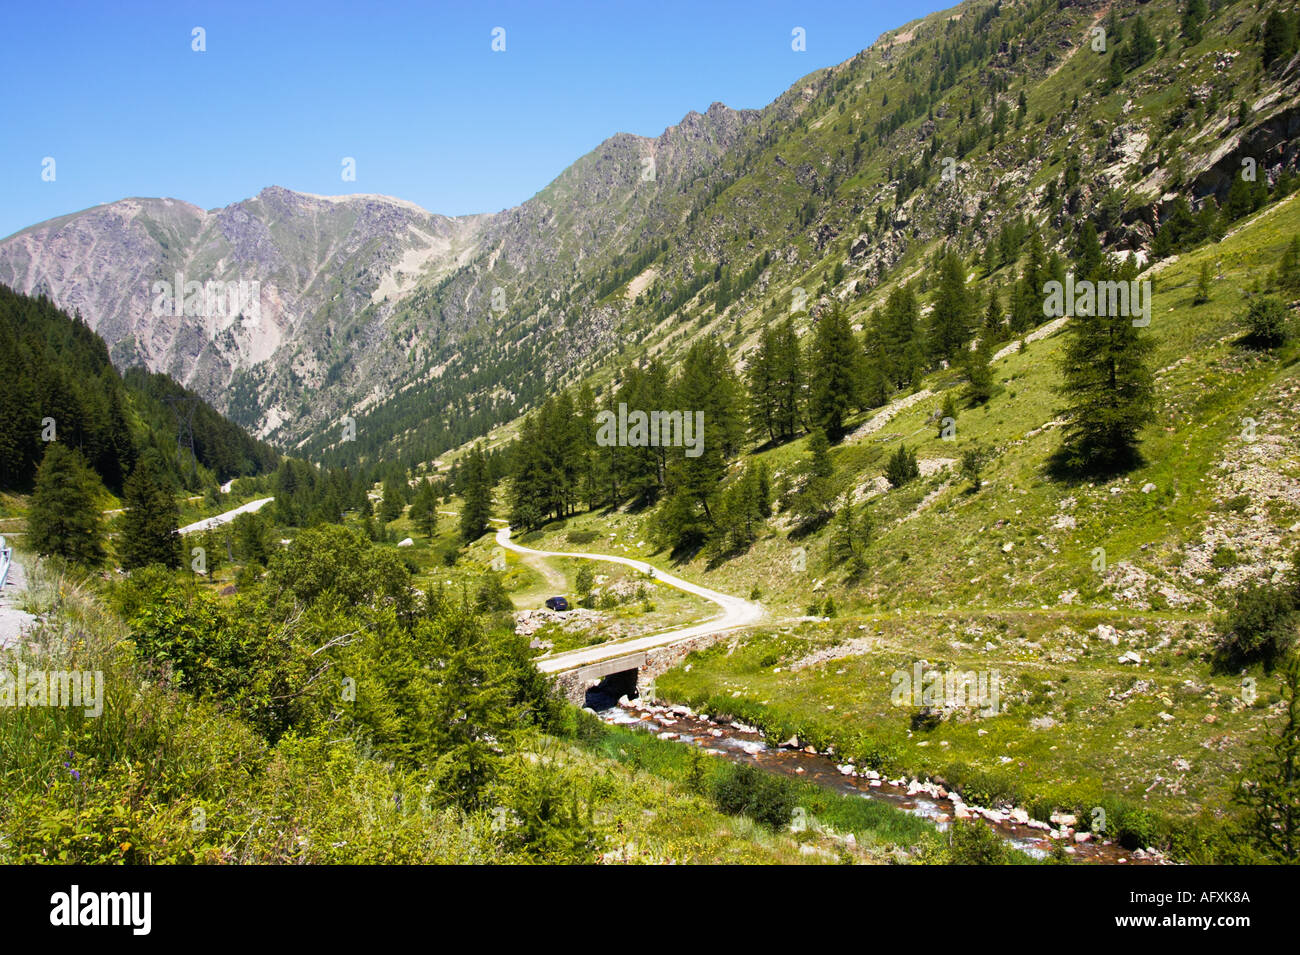 Mercantour National Park, Alpes Maritimes, France - the road to Isola 2000 - Stock Image